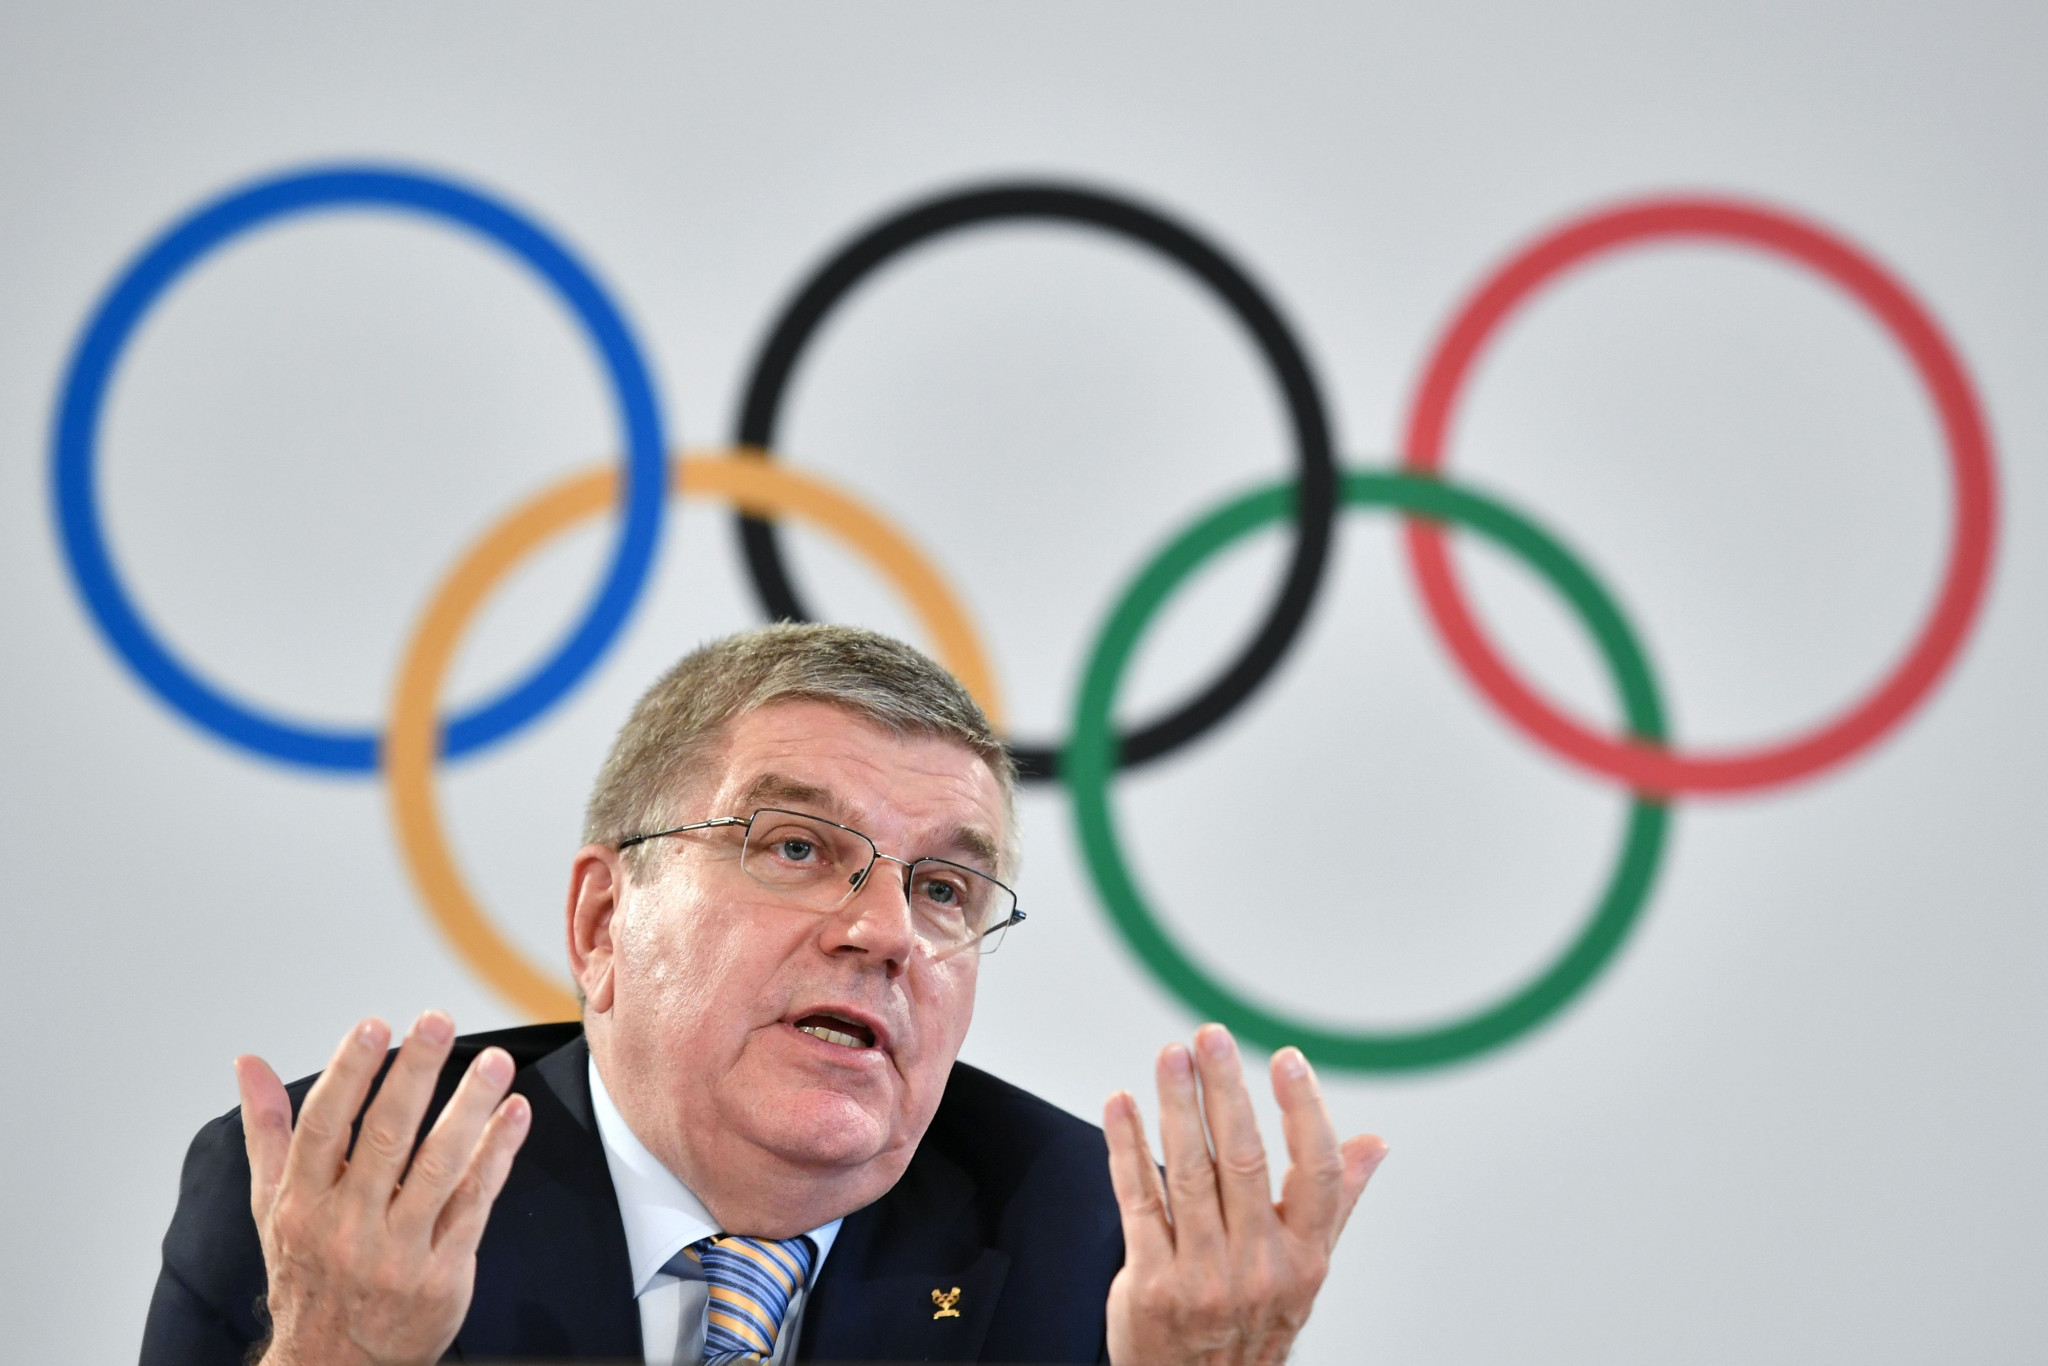 Thomas Bach conceded that doping will always happen earlier this month ©Getty Images